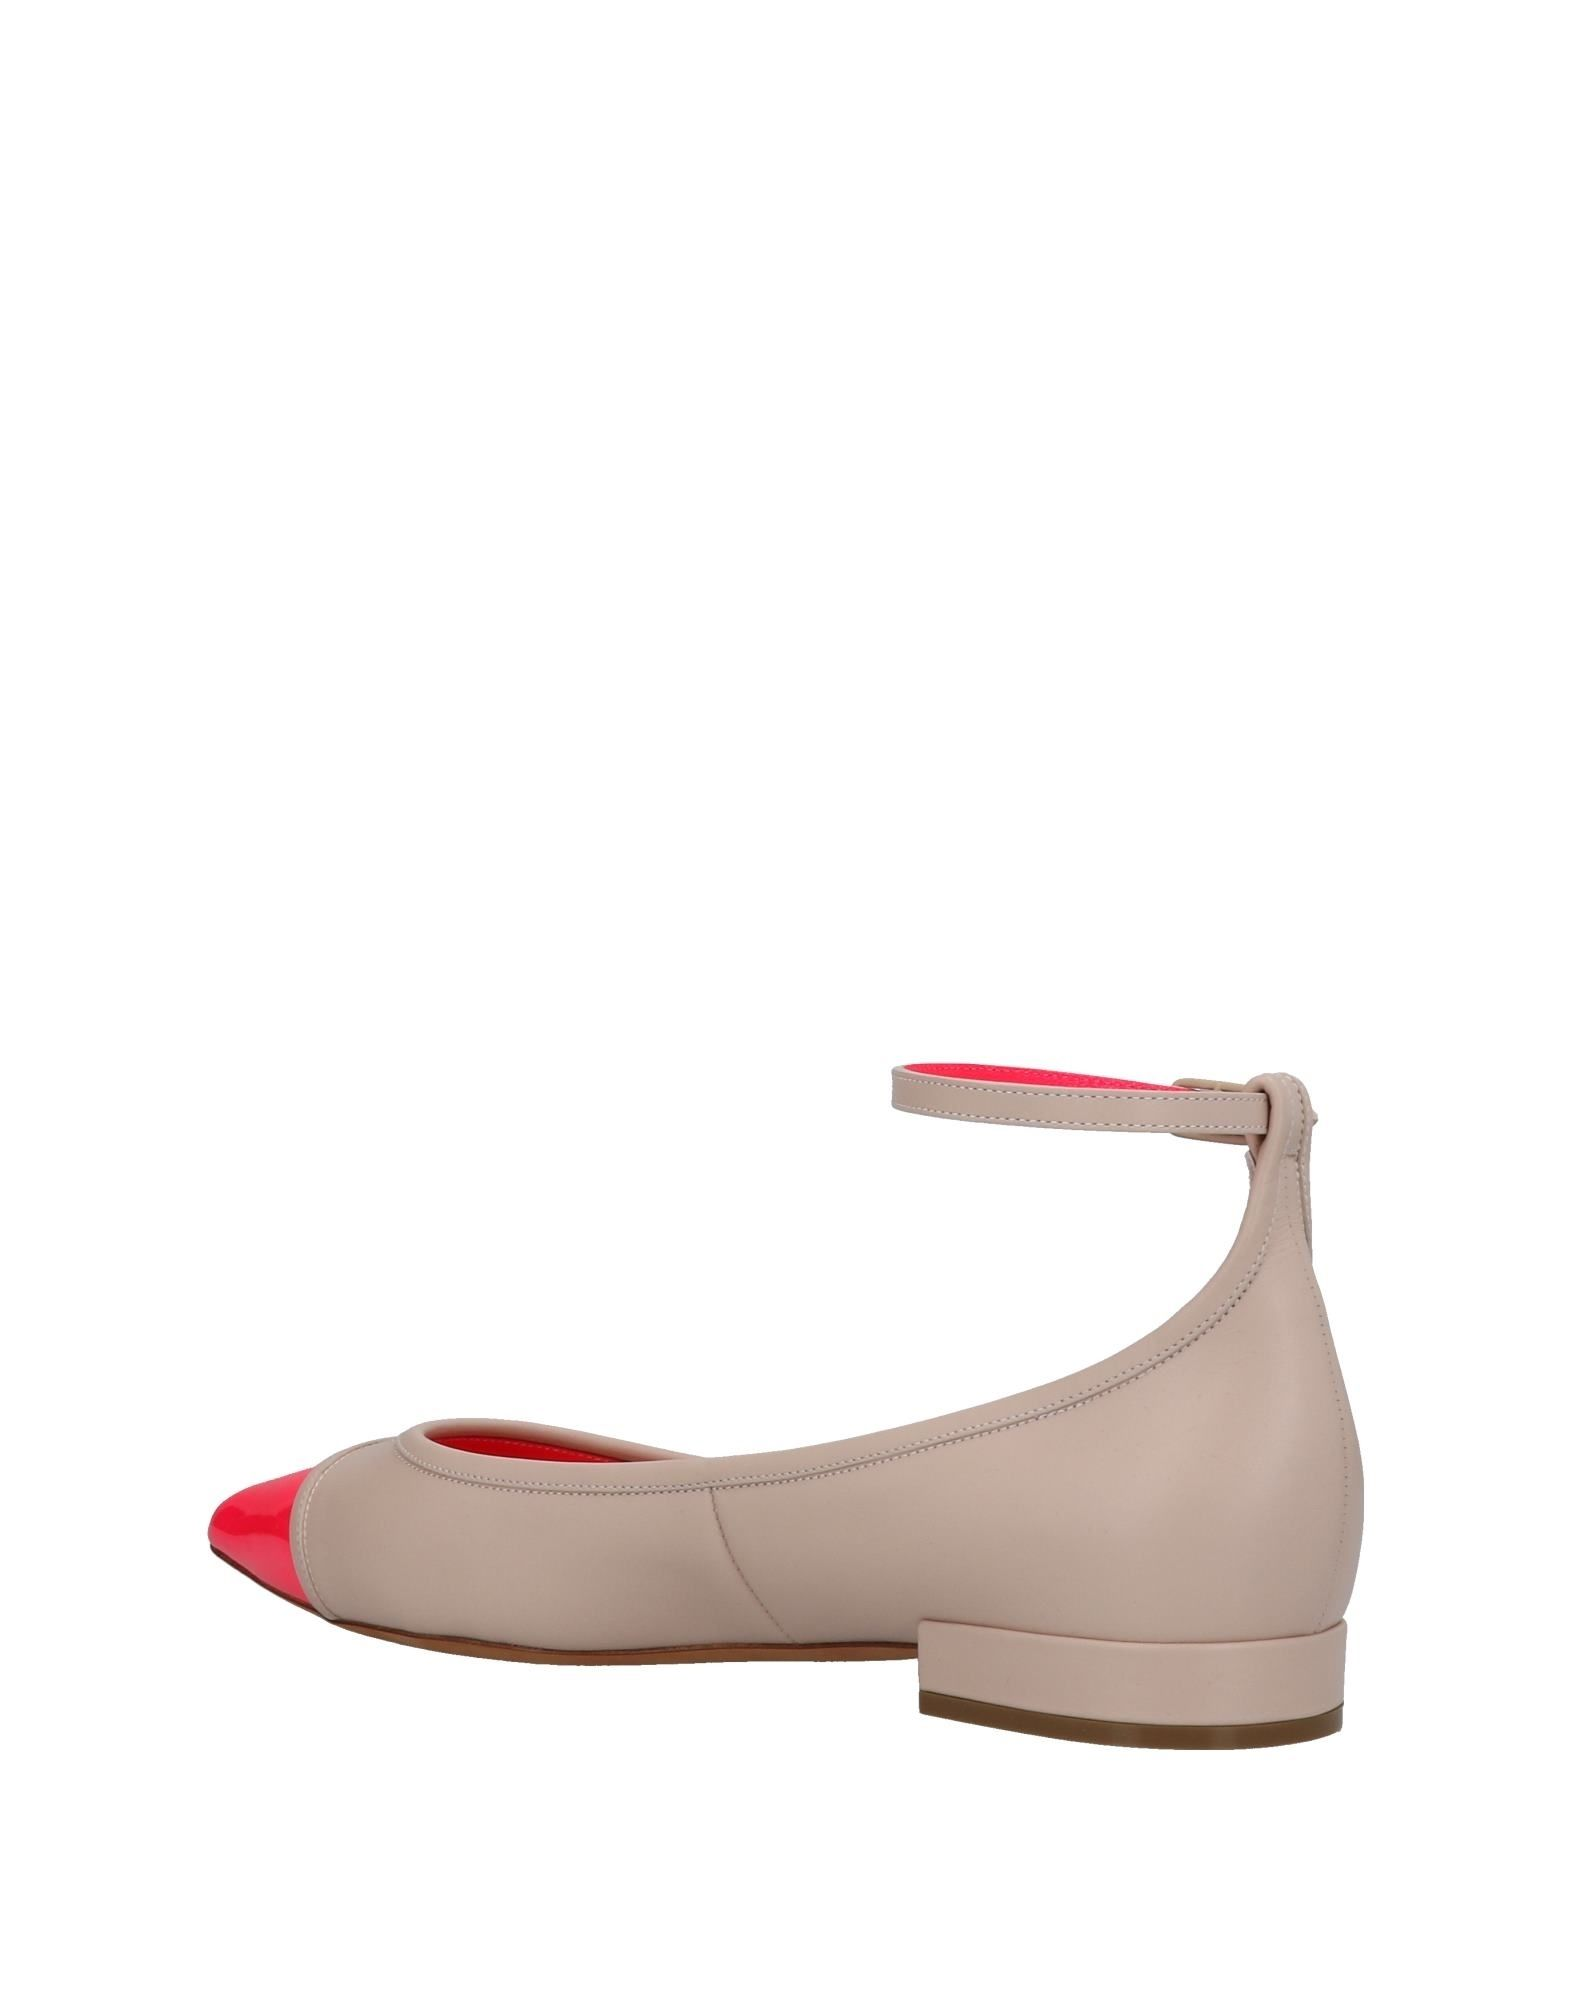 Ballerines Givenchy Femme - Ballerines Givenchy sur